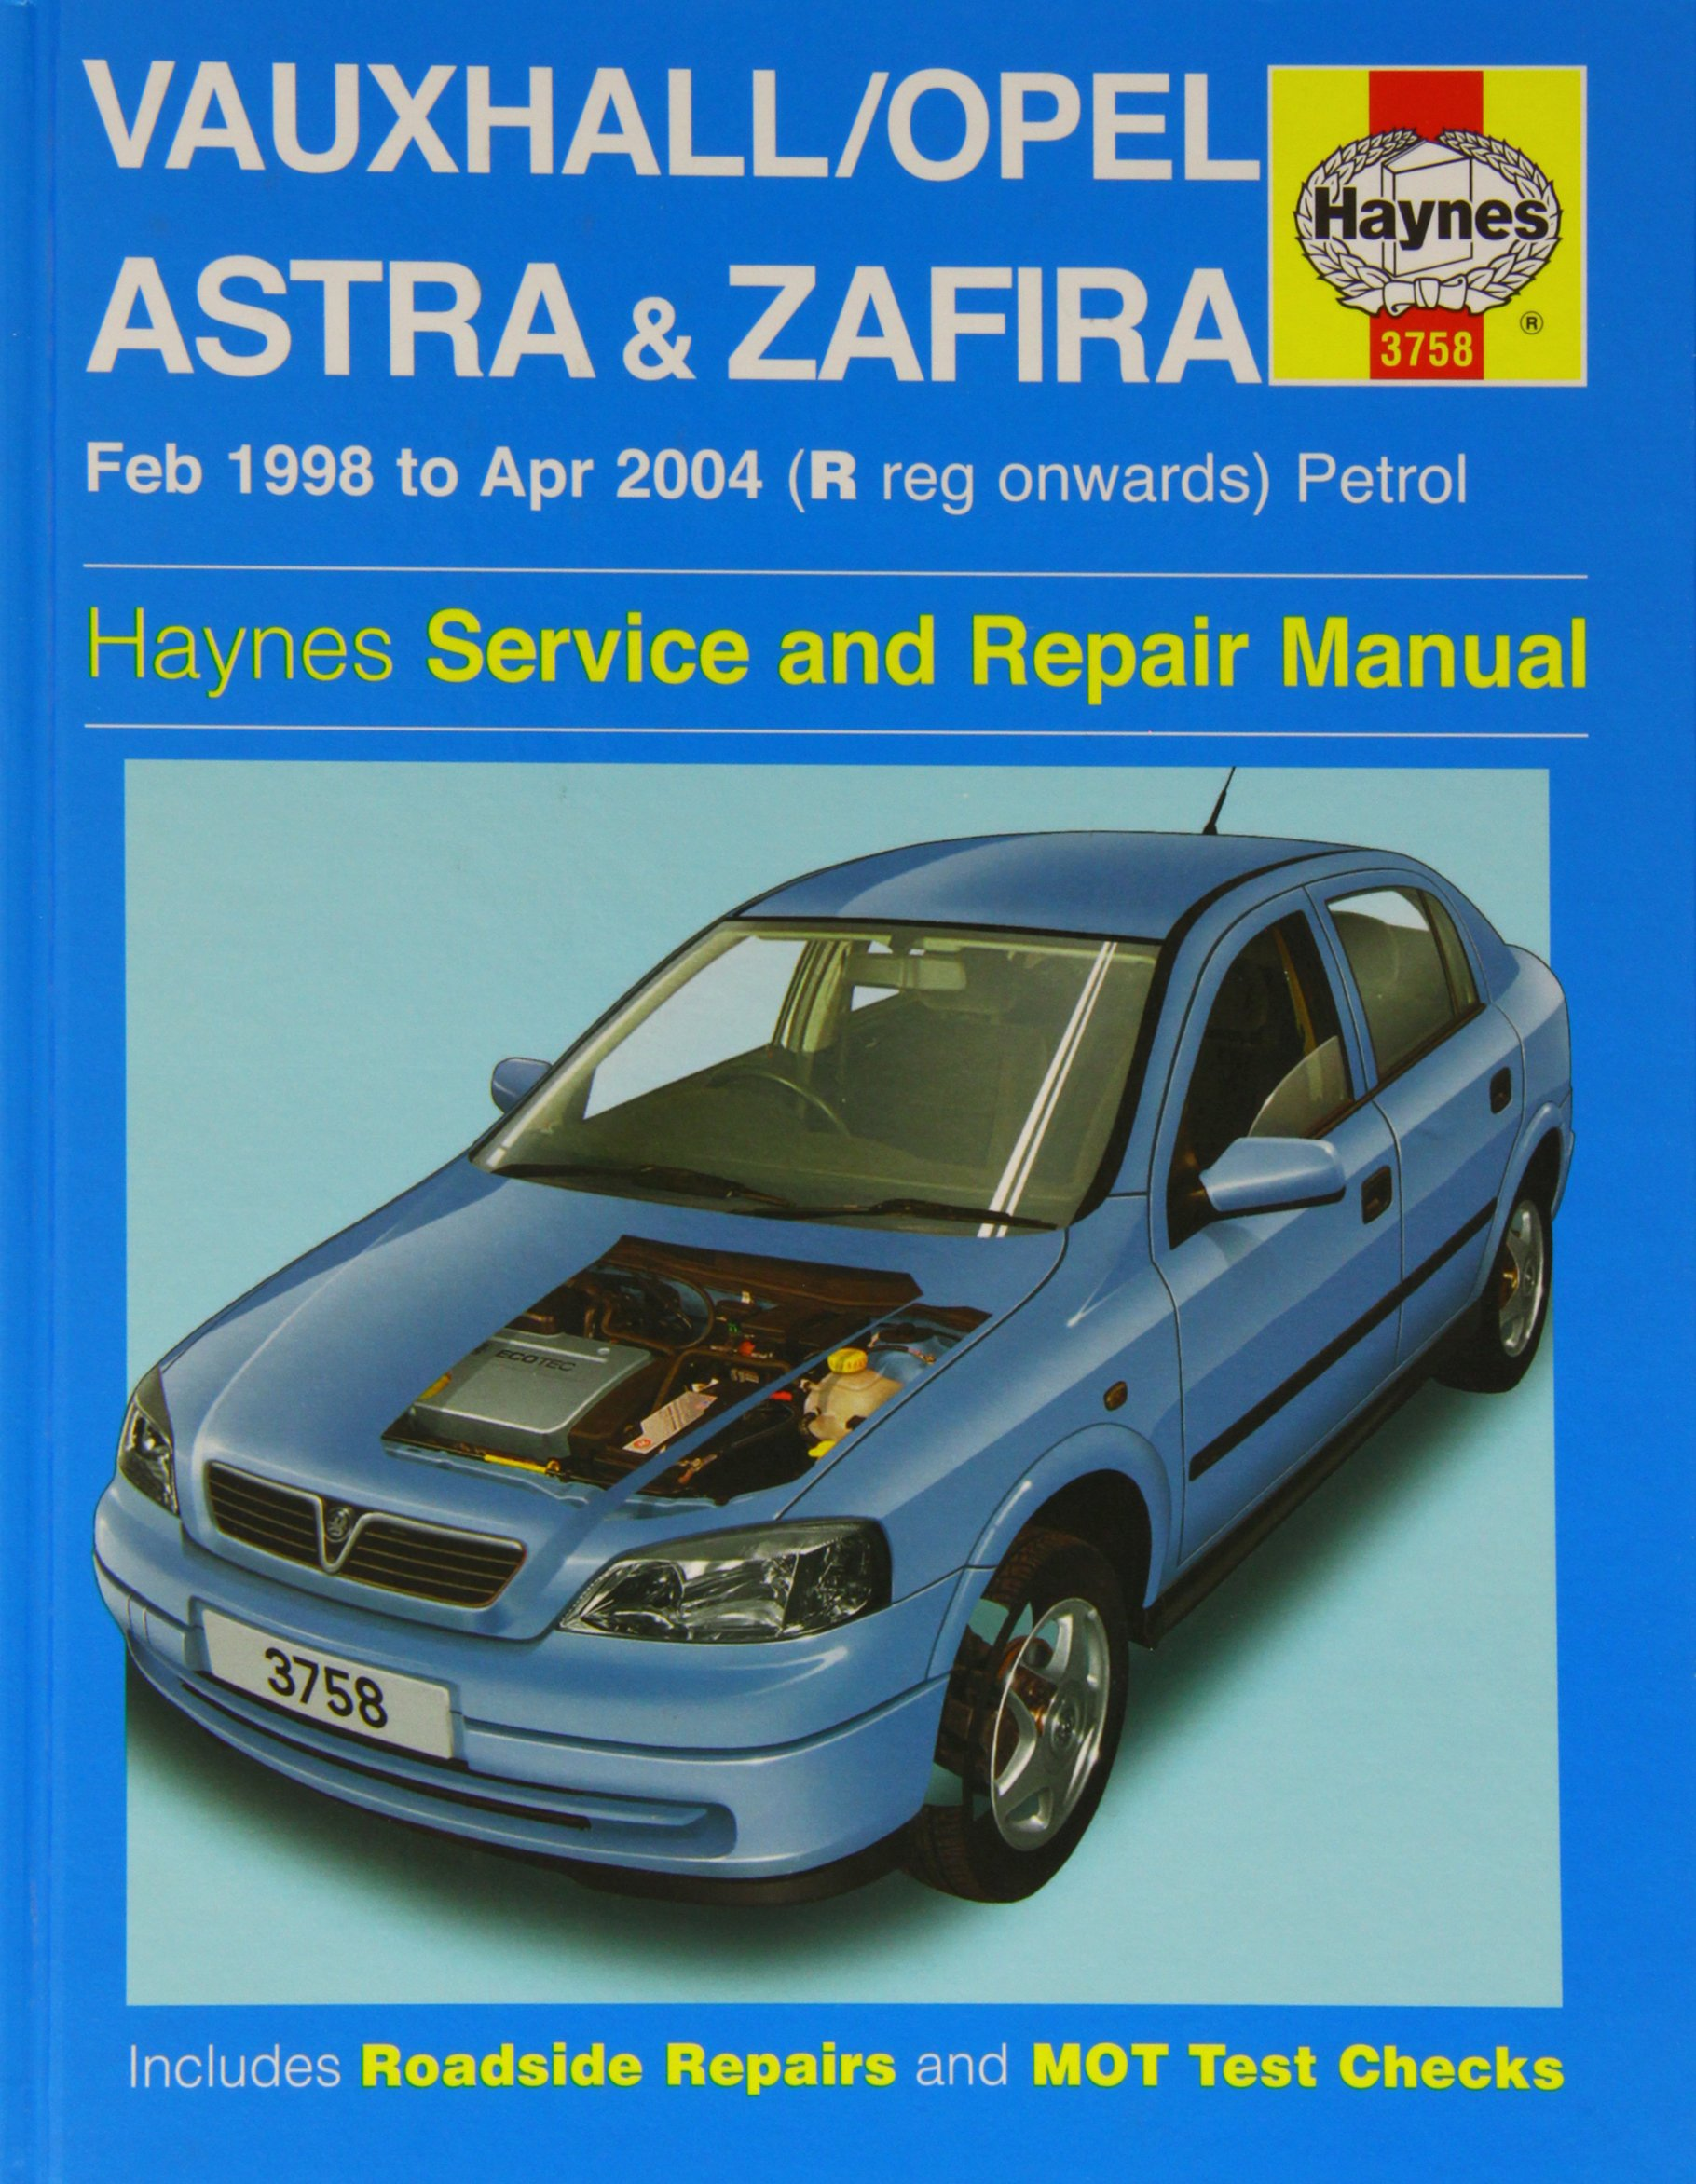 Haynes 3758 Owners and Workshop Car Manual: Amazon.co.uk: 0699414001606:  Books